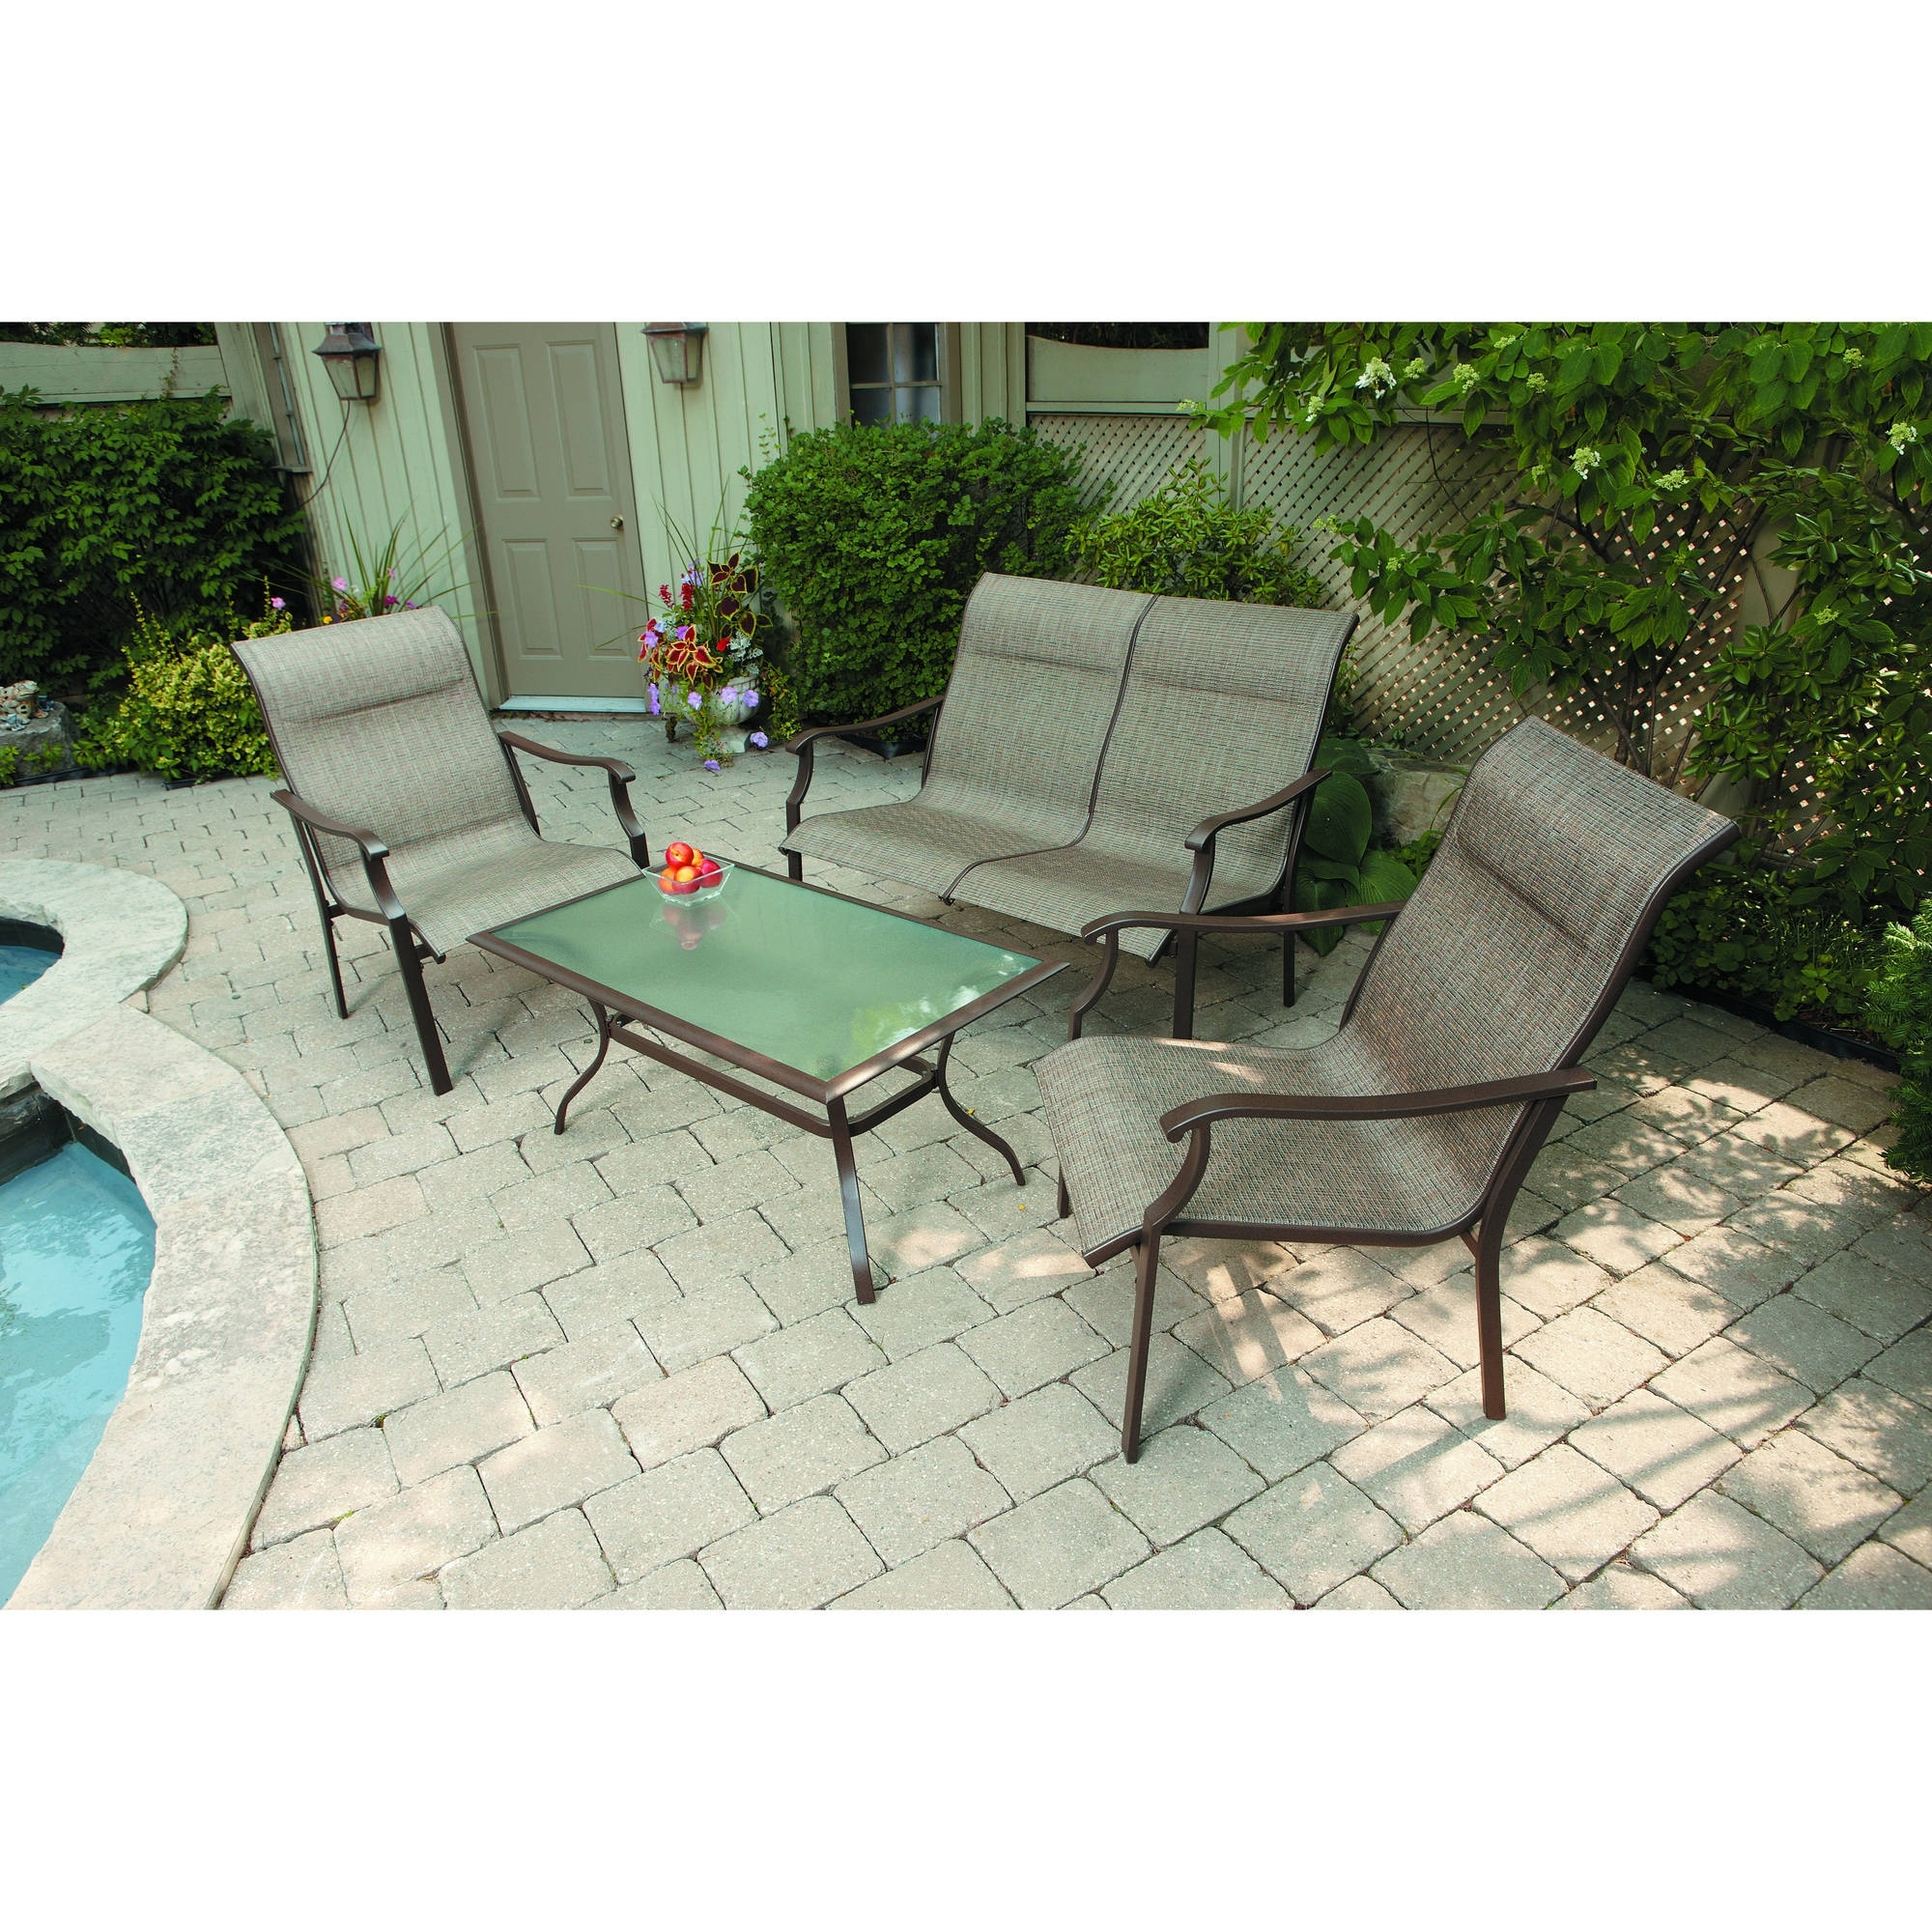 Mainstays York 4pc Sling Sofa Set – Walmart Throughout Most Recent Sling Patio Conversation Sets (View 6 of 20)